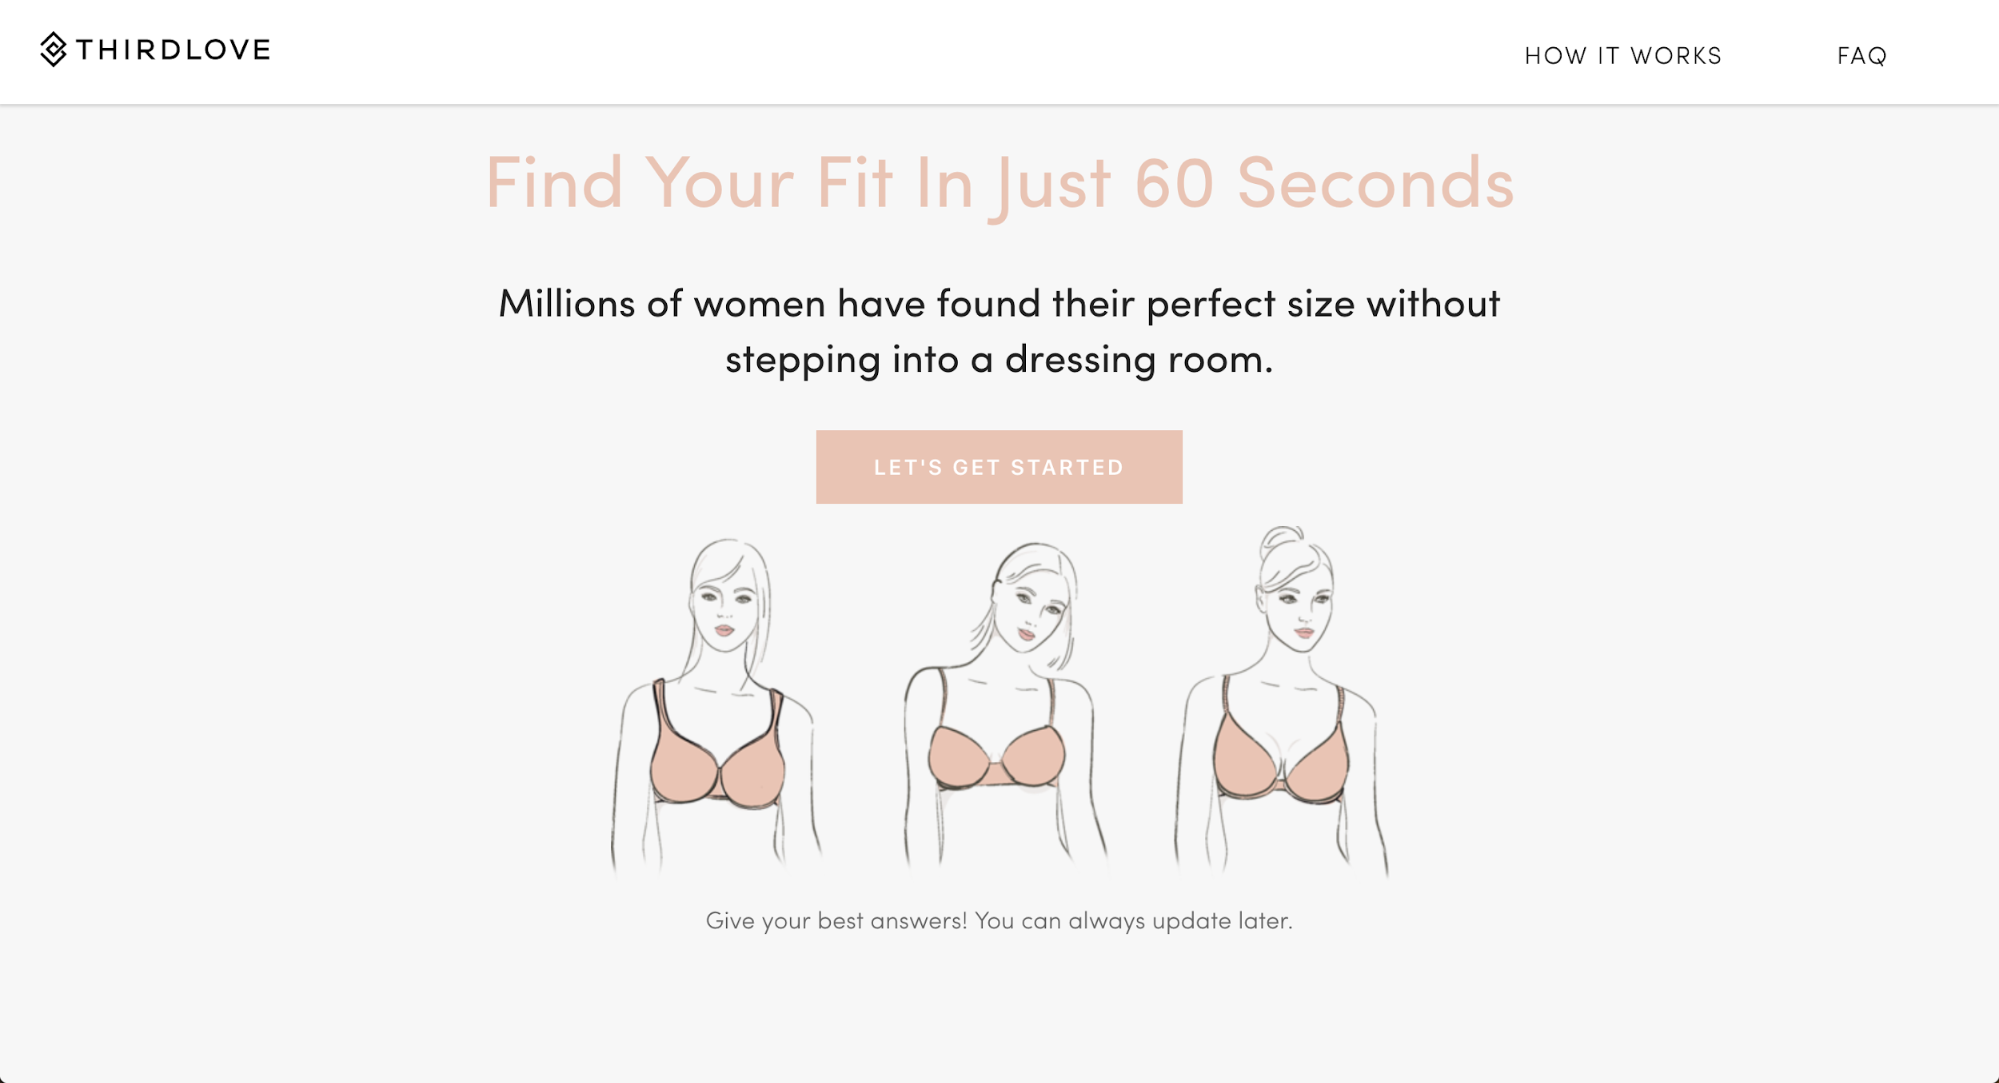 More than ten million women have entered their measurements in Fit Finder, a data boon for ThirdLove